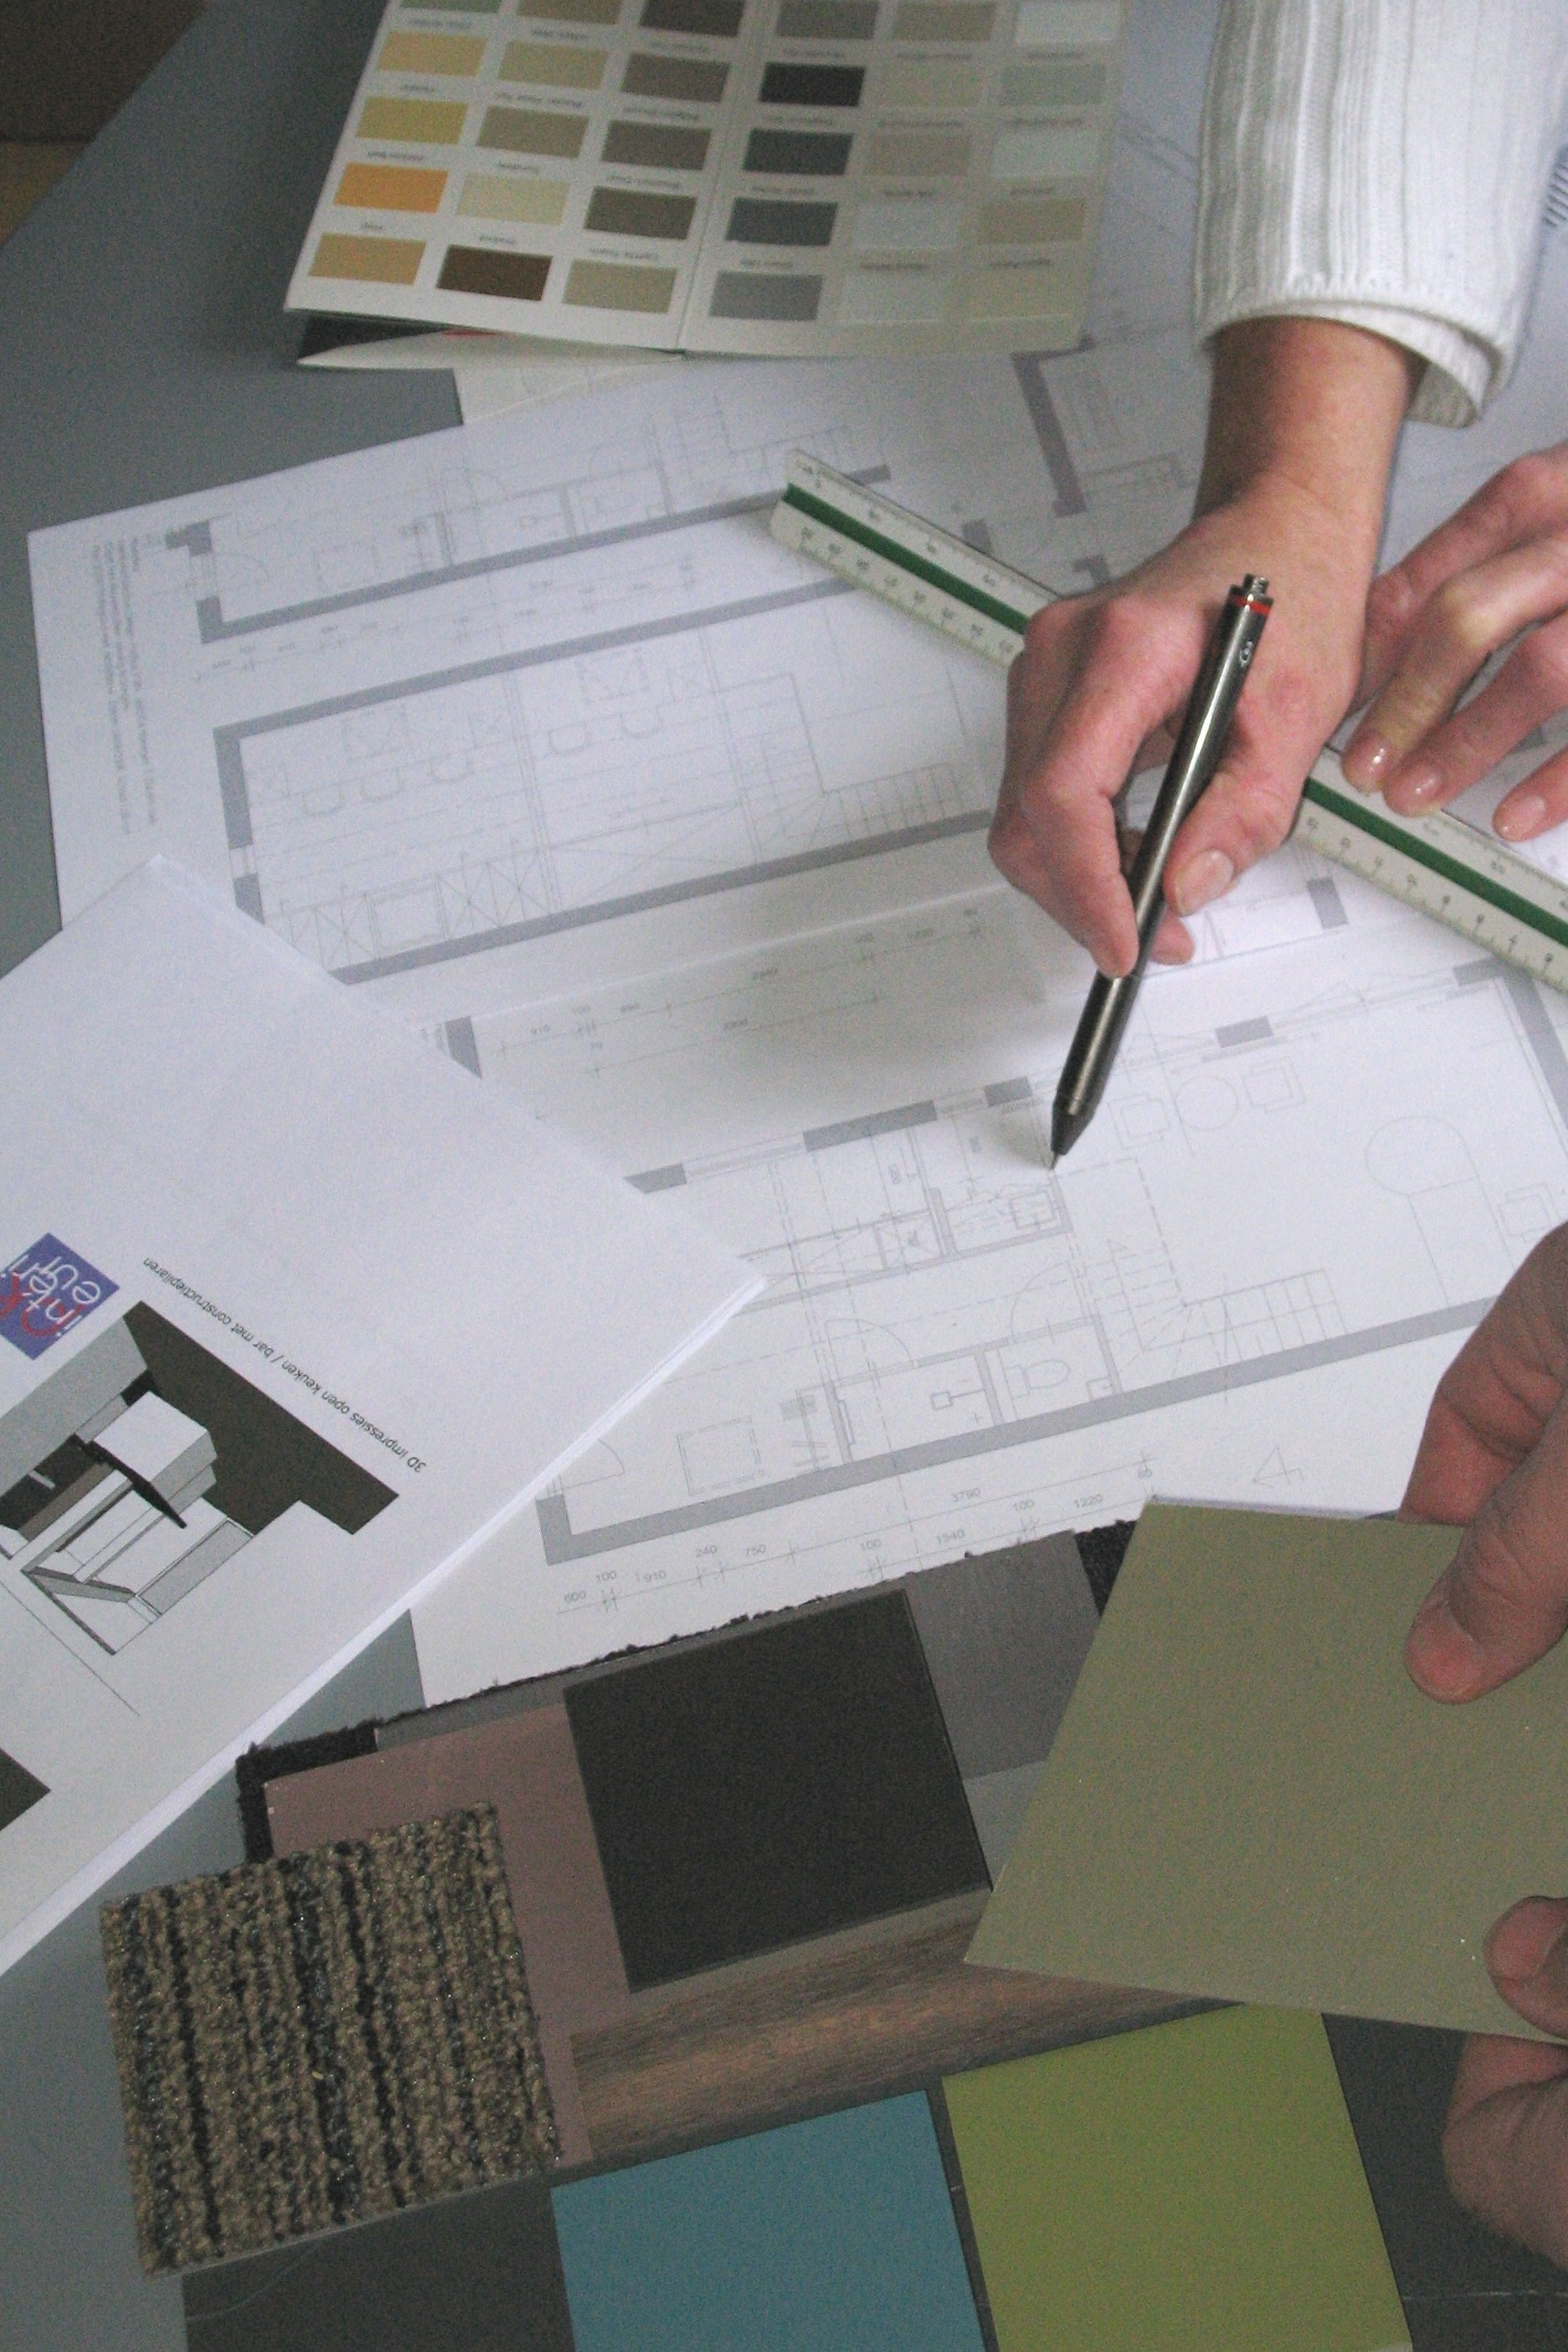 Interior Architect and Interior Designer in France (Lyon)  for Individuals and Professionals